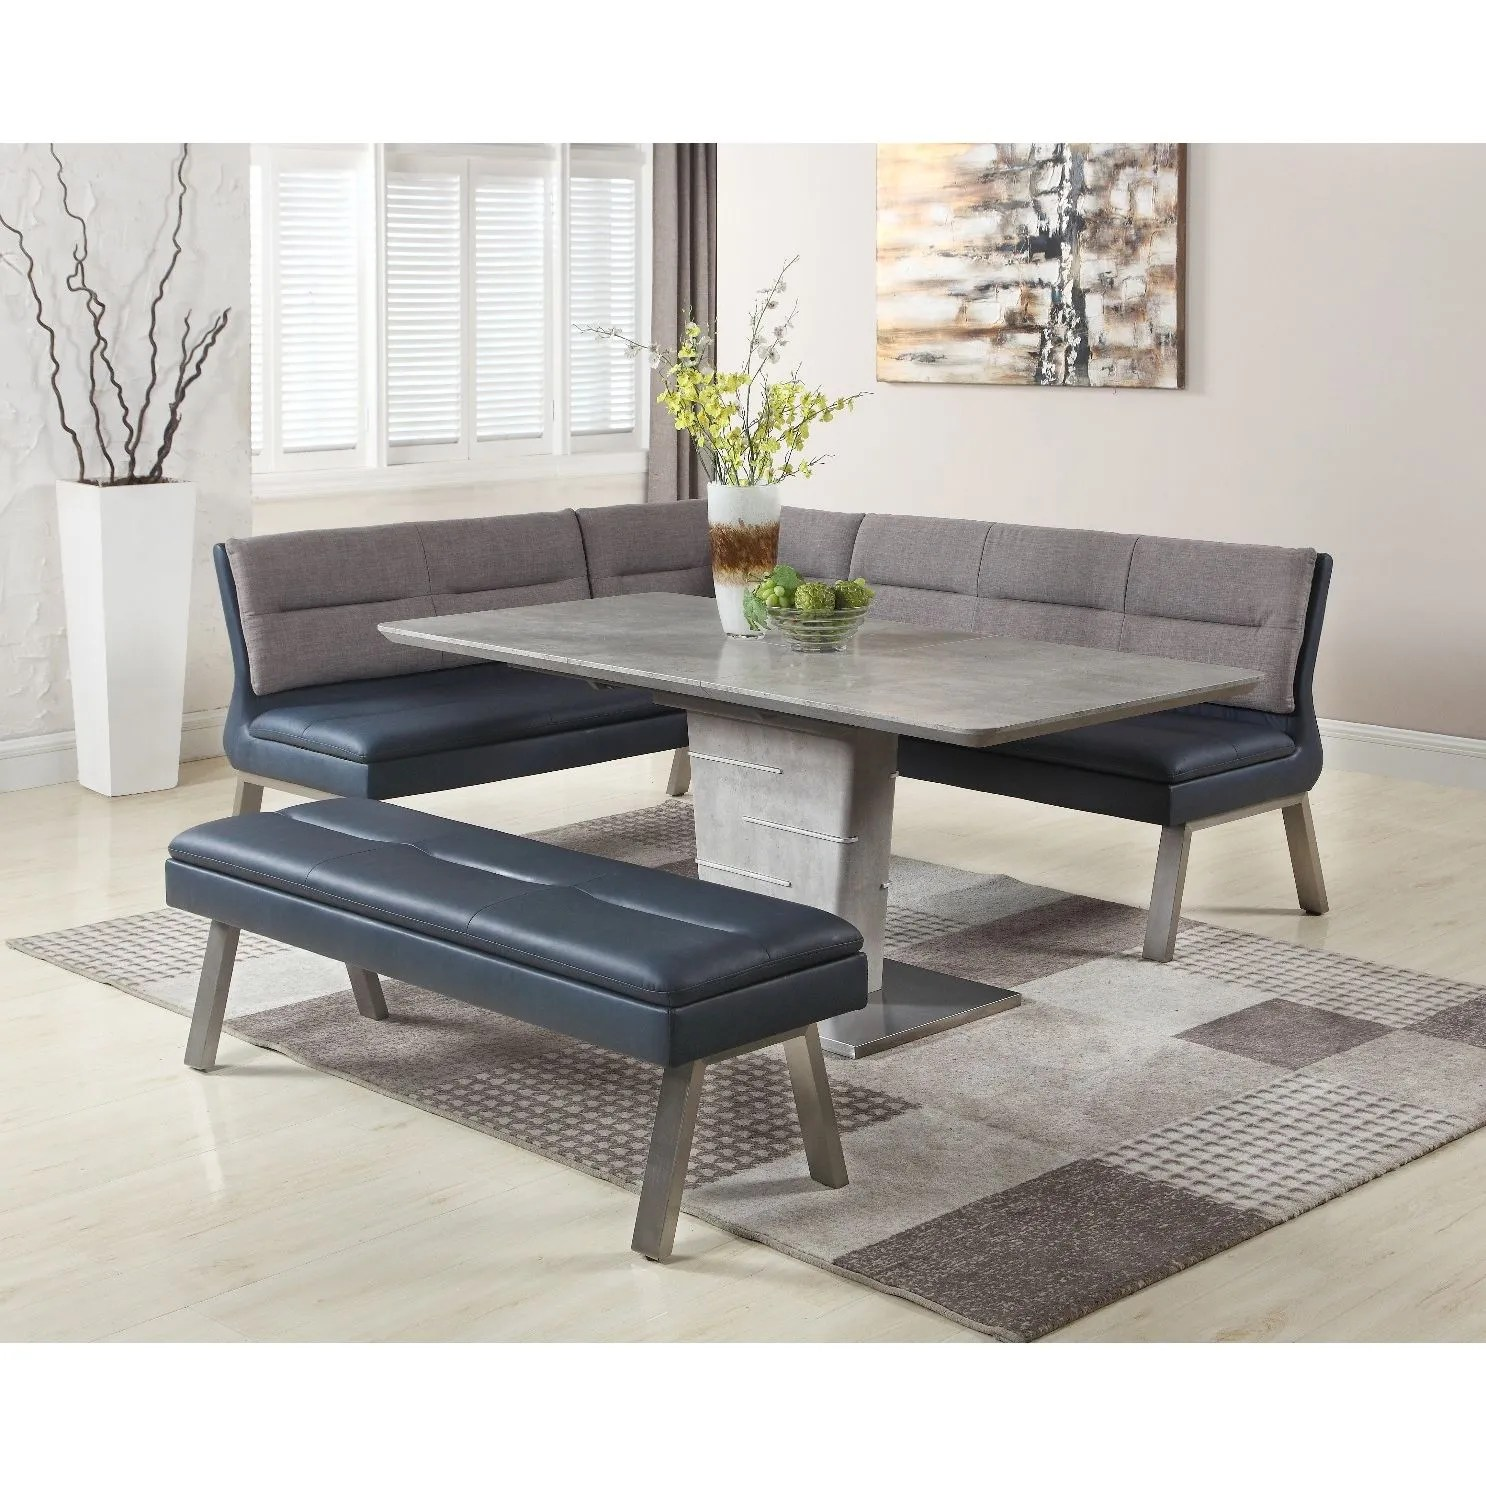 Jezebel 3 Pieces Dining Set Table Nook Bench Bostonconcept Com